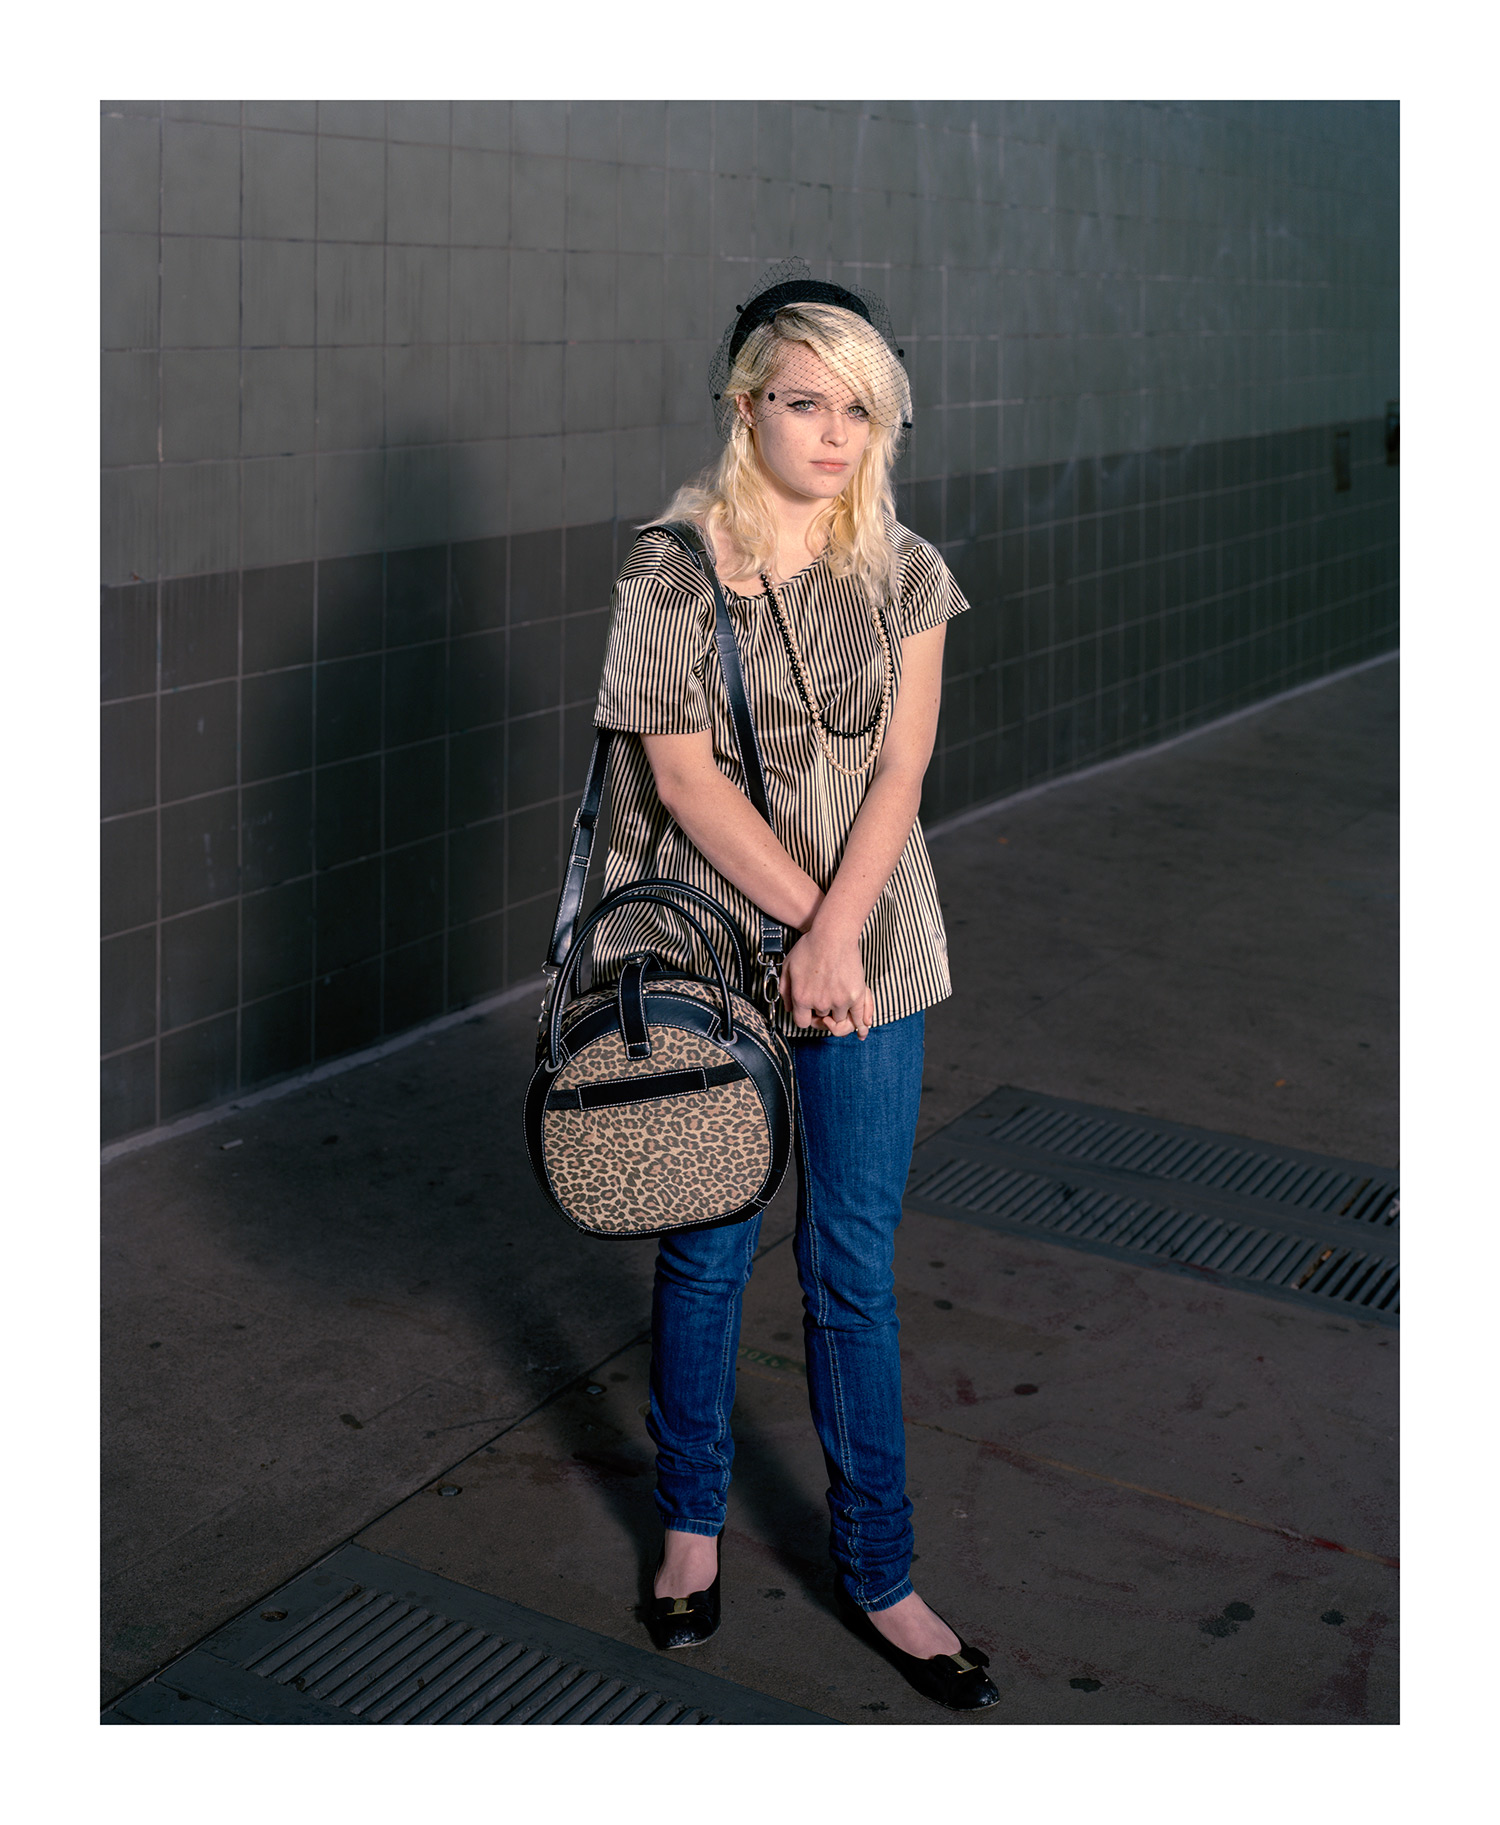 Girl with the Leopard-Skin Bag, San Francisco